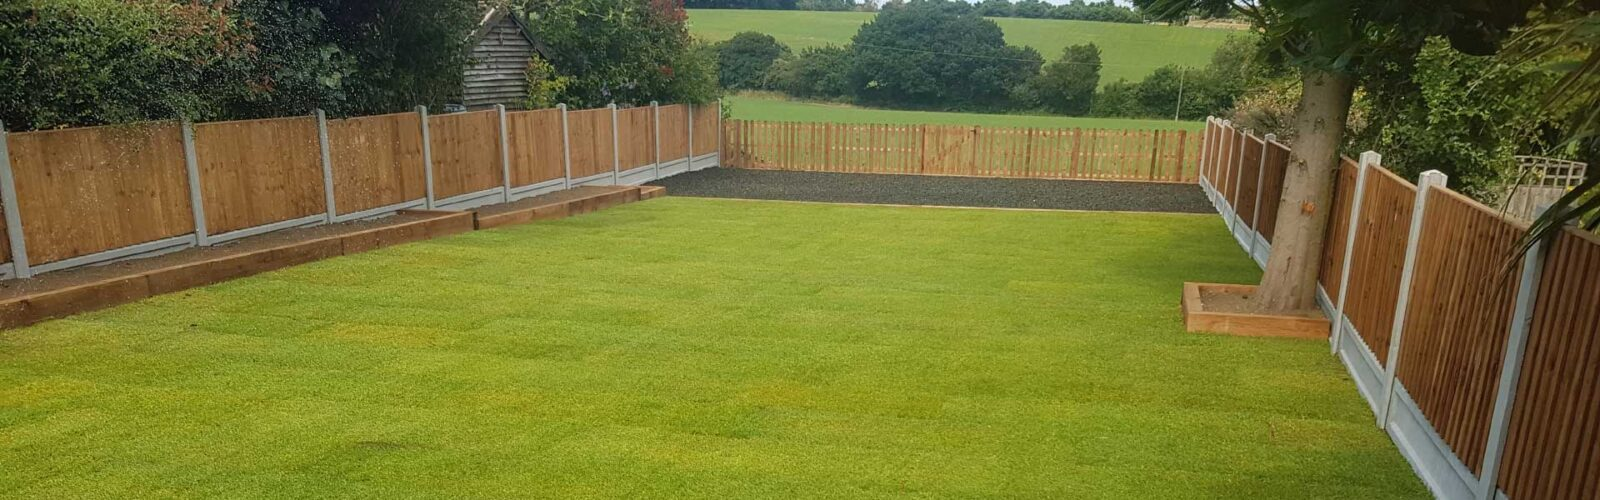 Essex Grass Landscaping Fencing